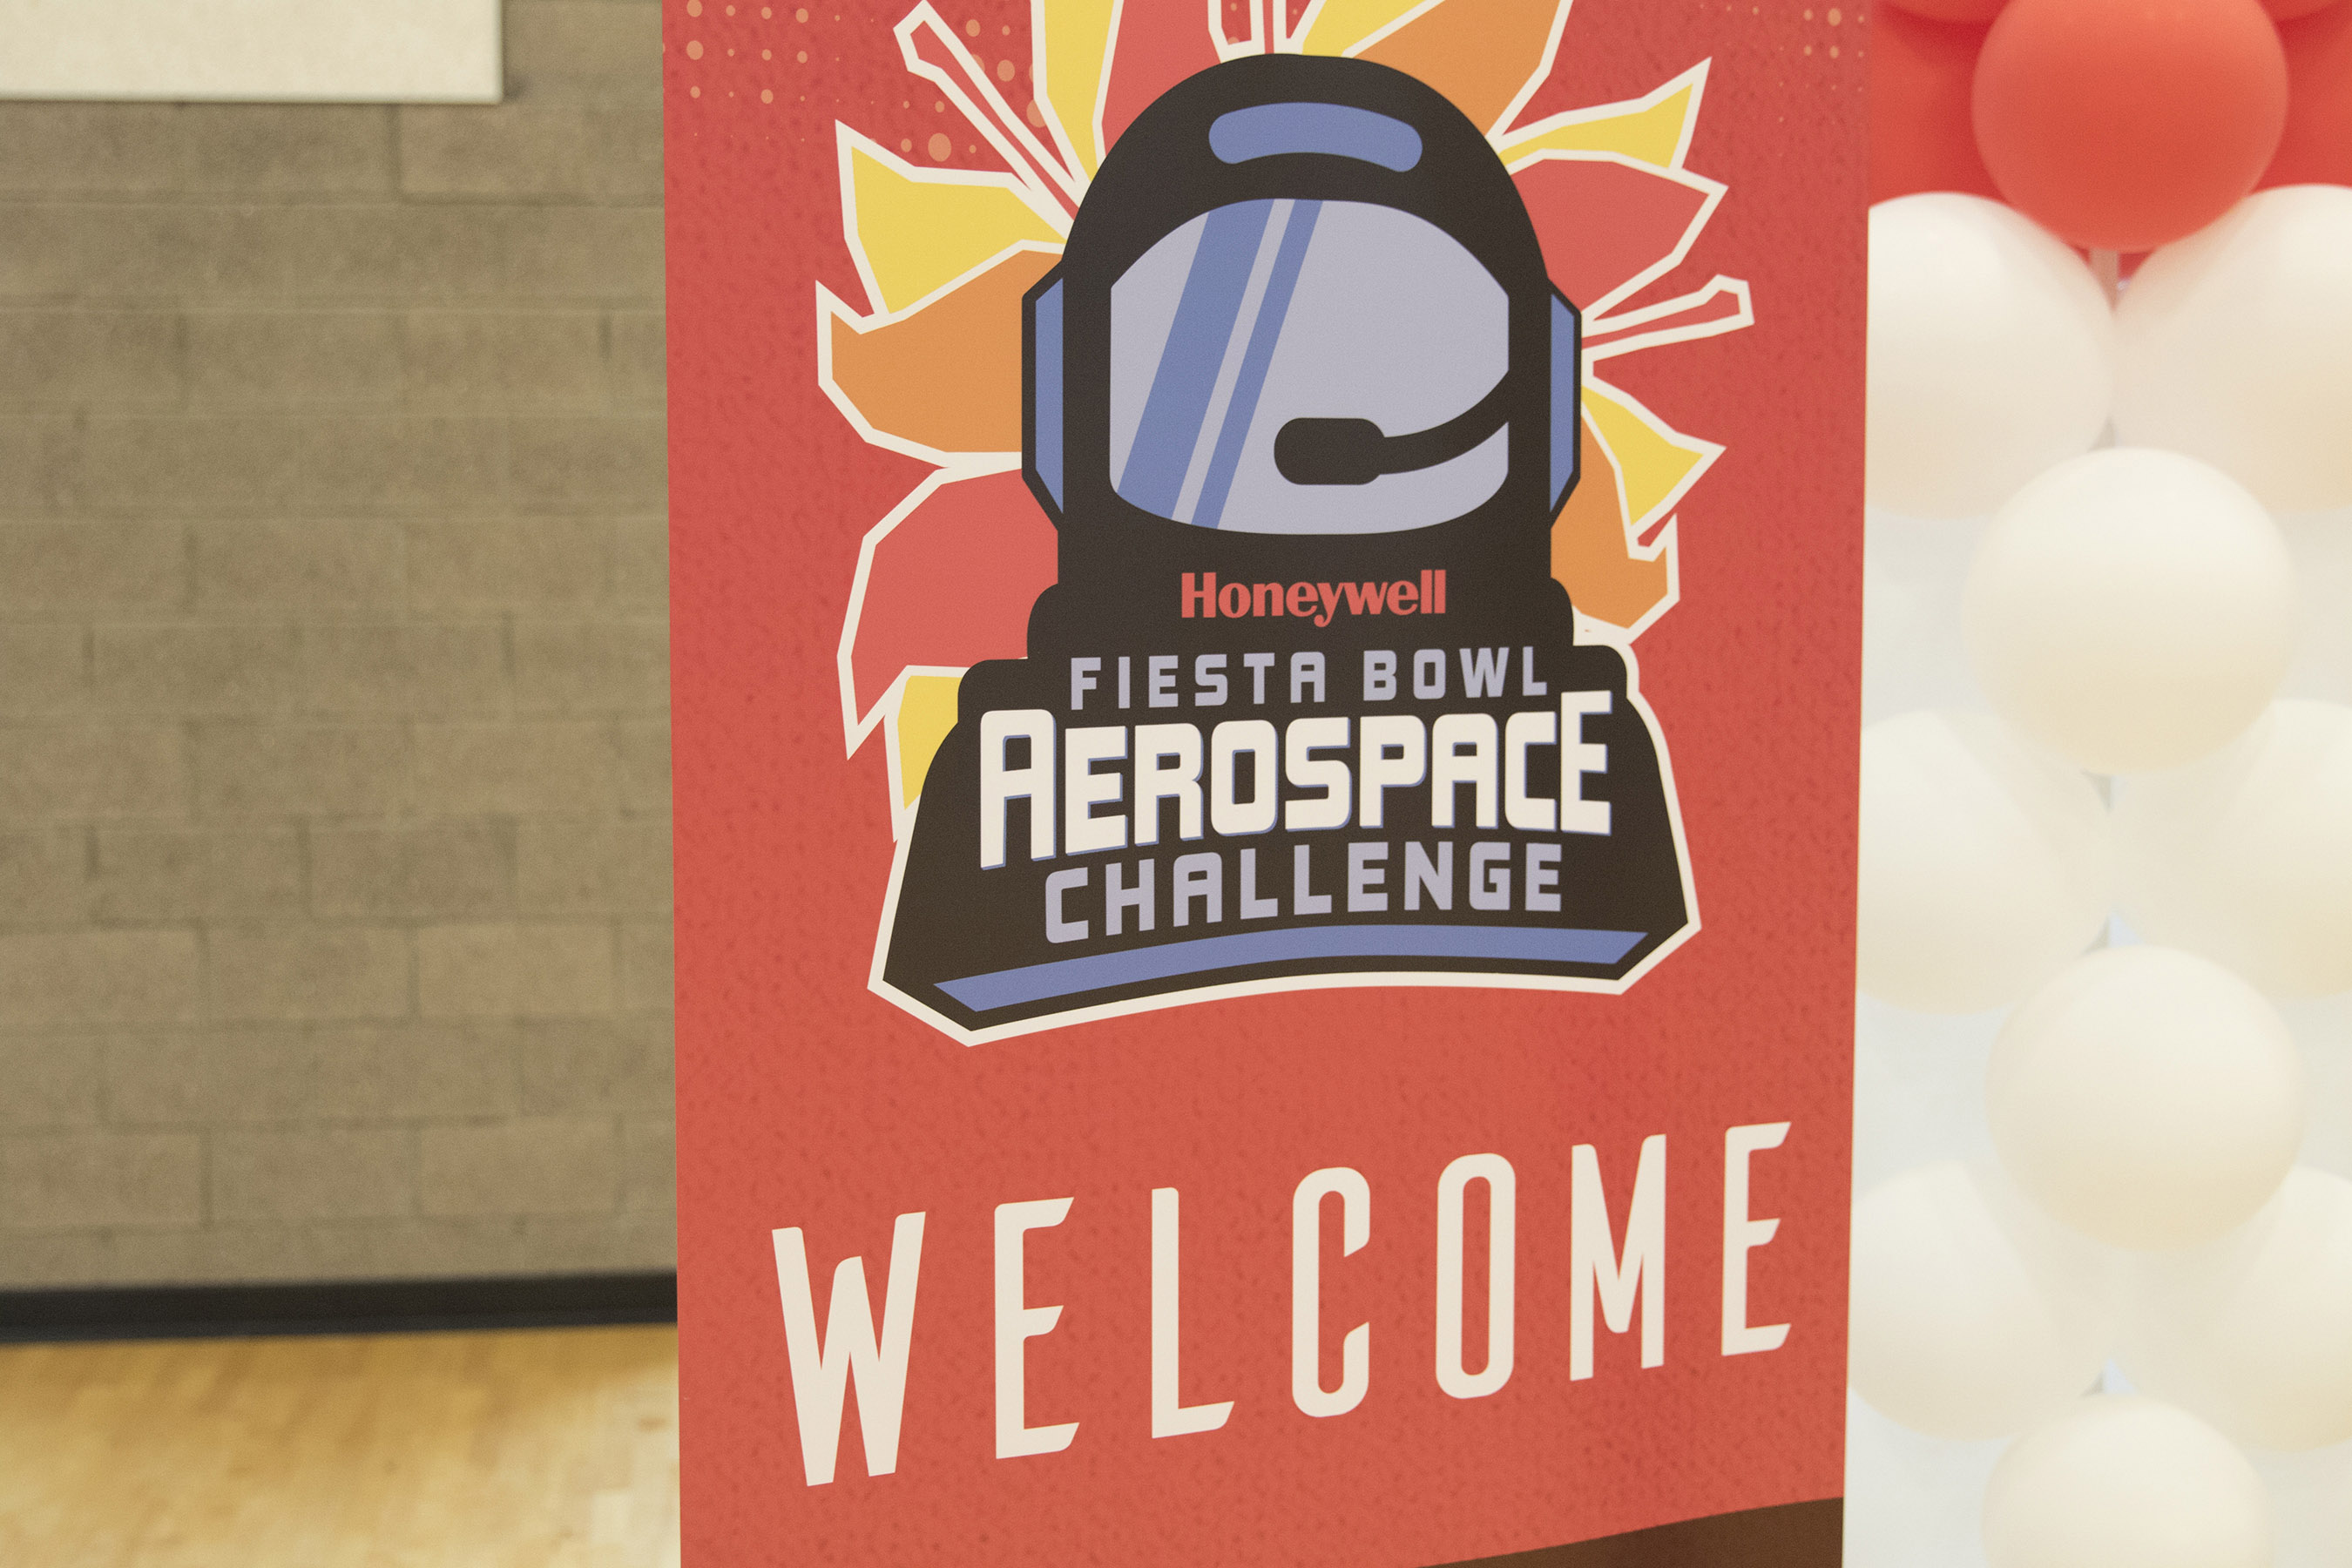 A welcome sign greets students to the Honeywell Fiesta Bowl Aerospace Challenge. Over 1,300 students from 20 different Arizona schools competed. (Photo by Josh Orcutt/Cronkite News)